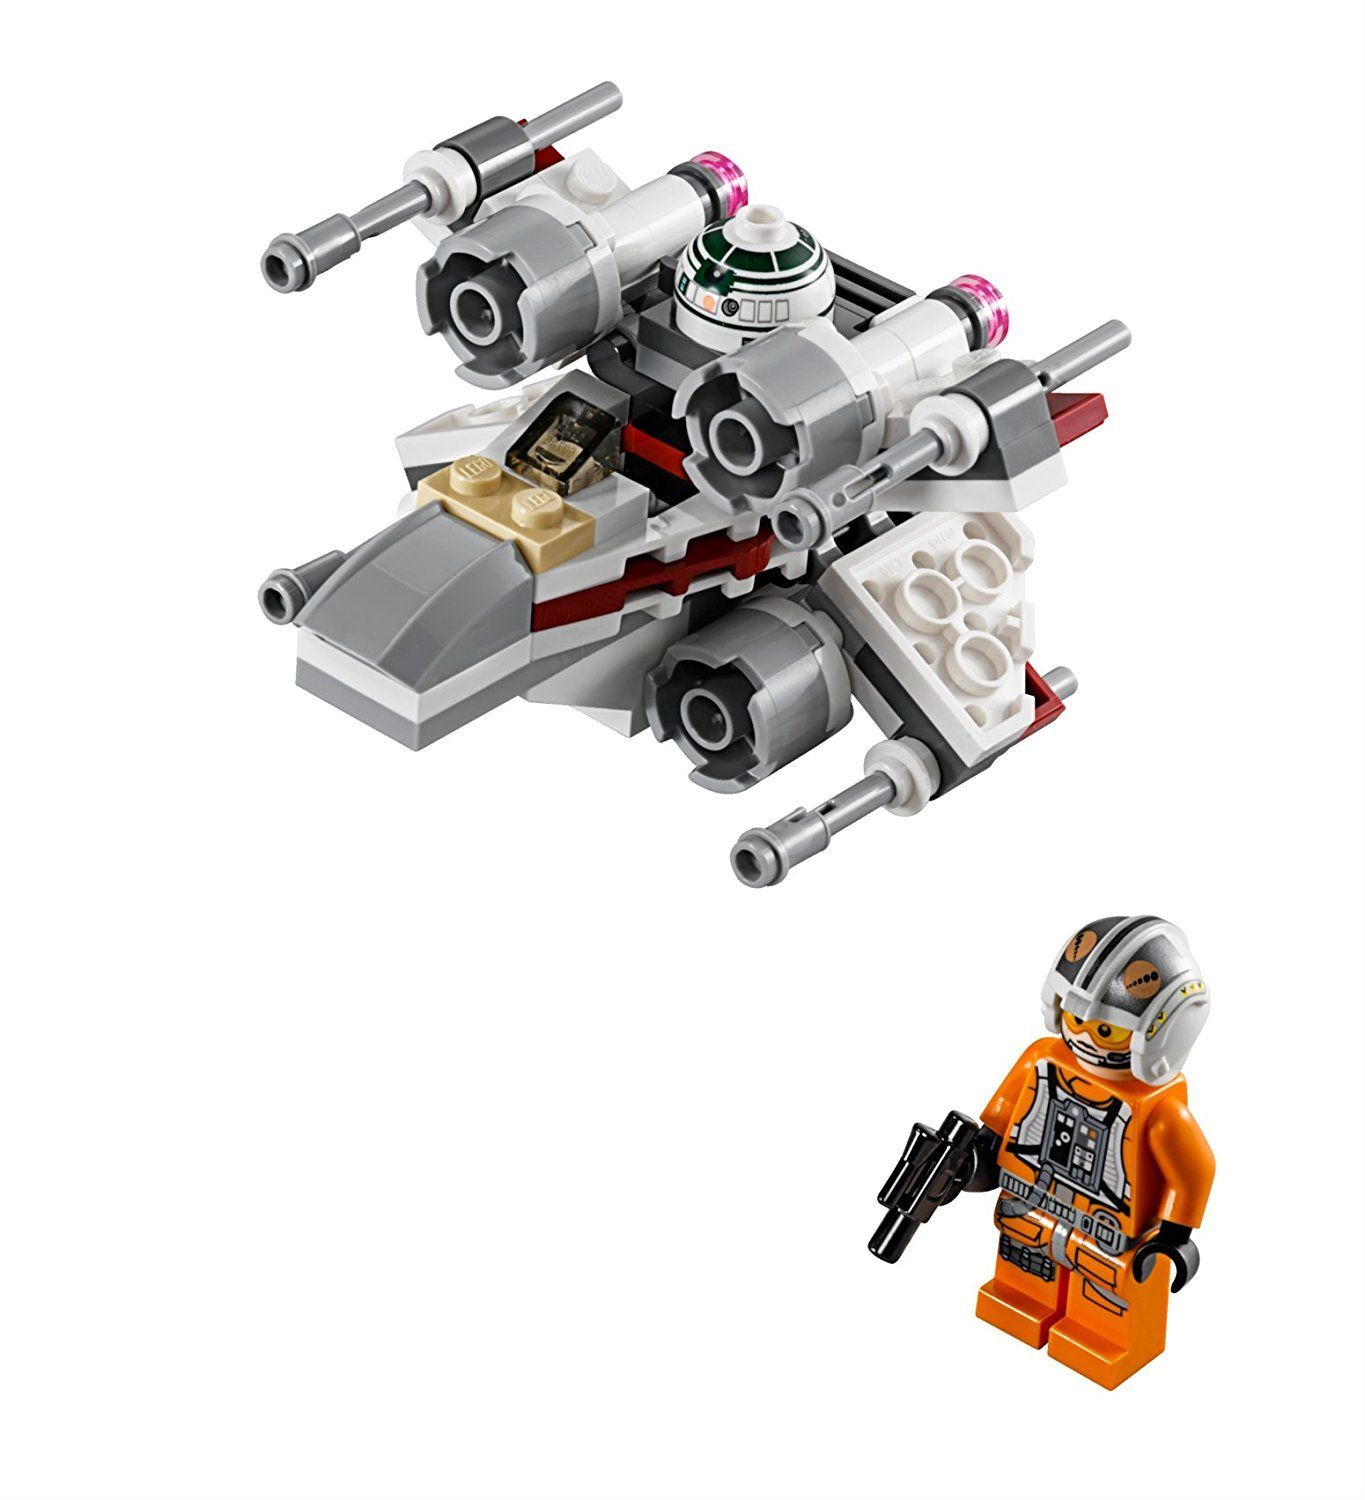 716NB ajH8L. SL1500 1 Smyths Toys Giving Away Free Lego In All Its Stores This Weekend